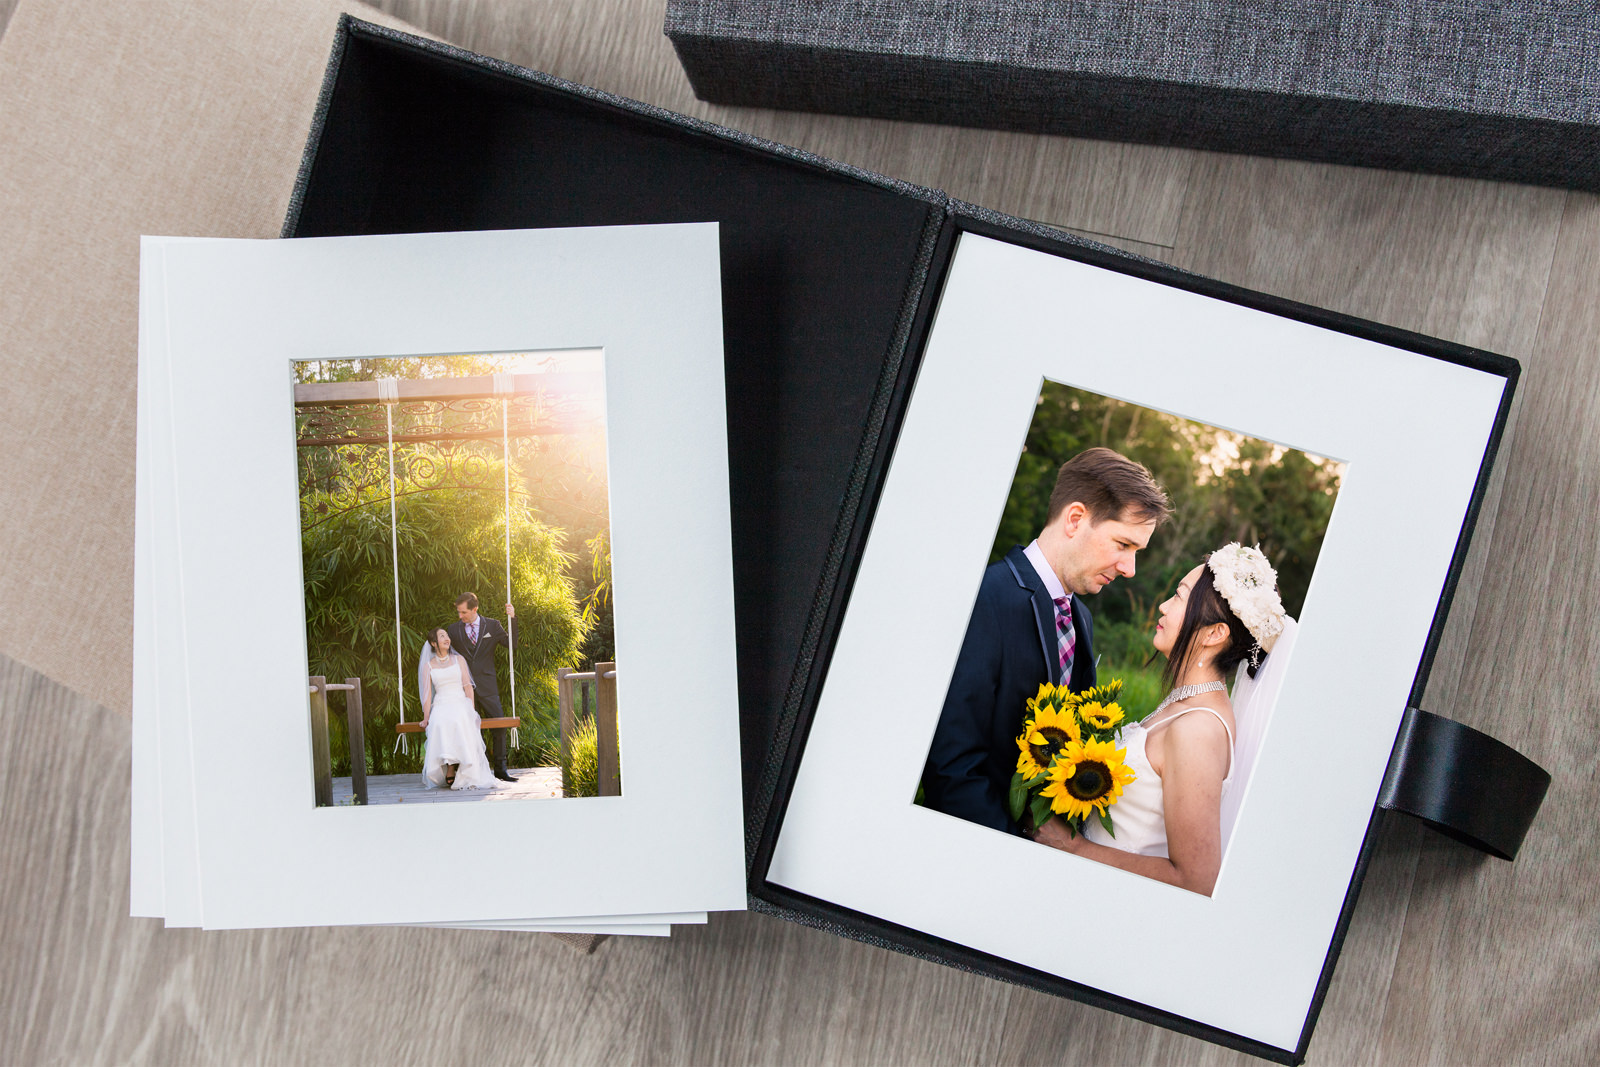 Matted prints in a display box displaying wedding photos from Sunshine Coast Chapel